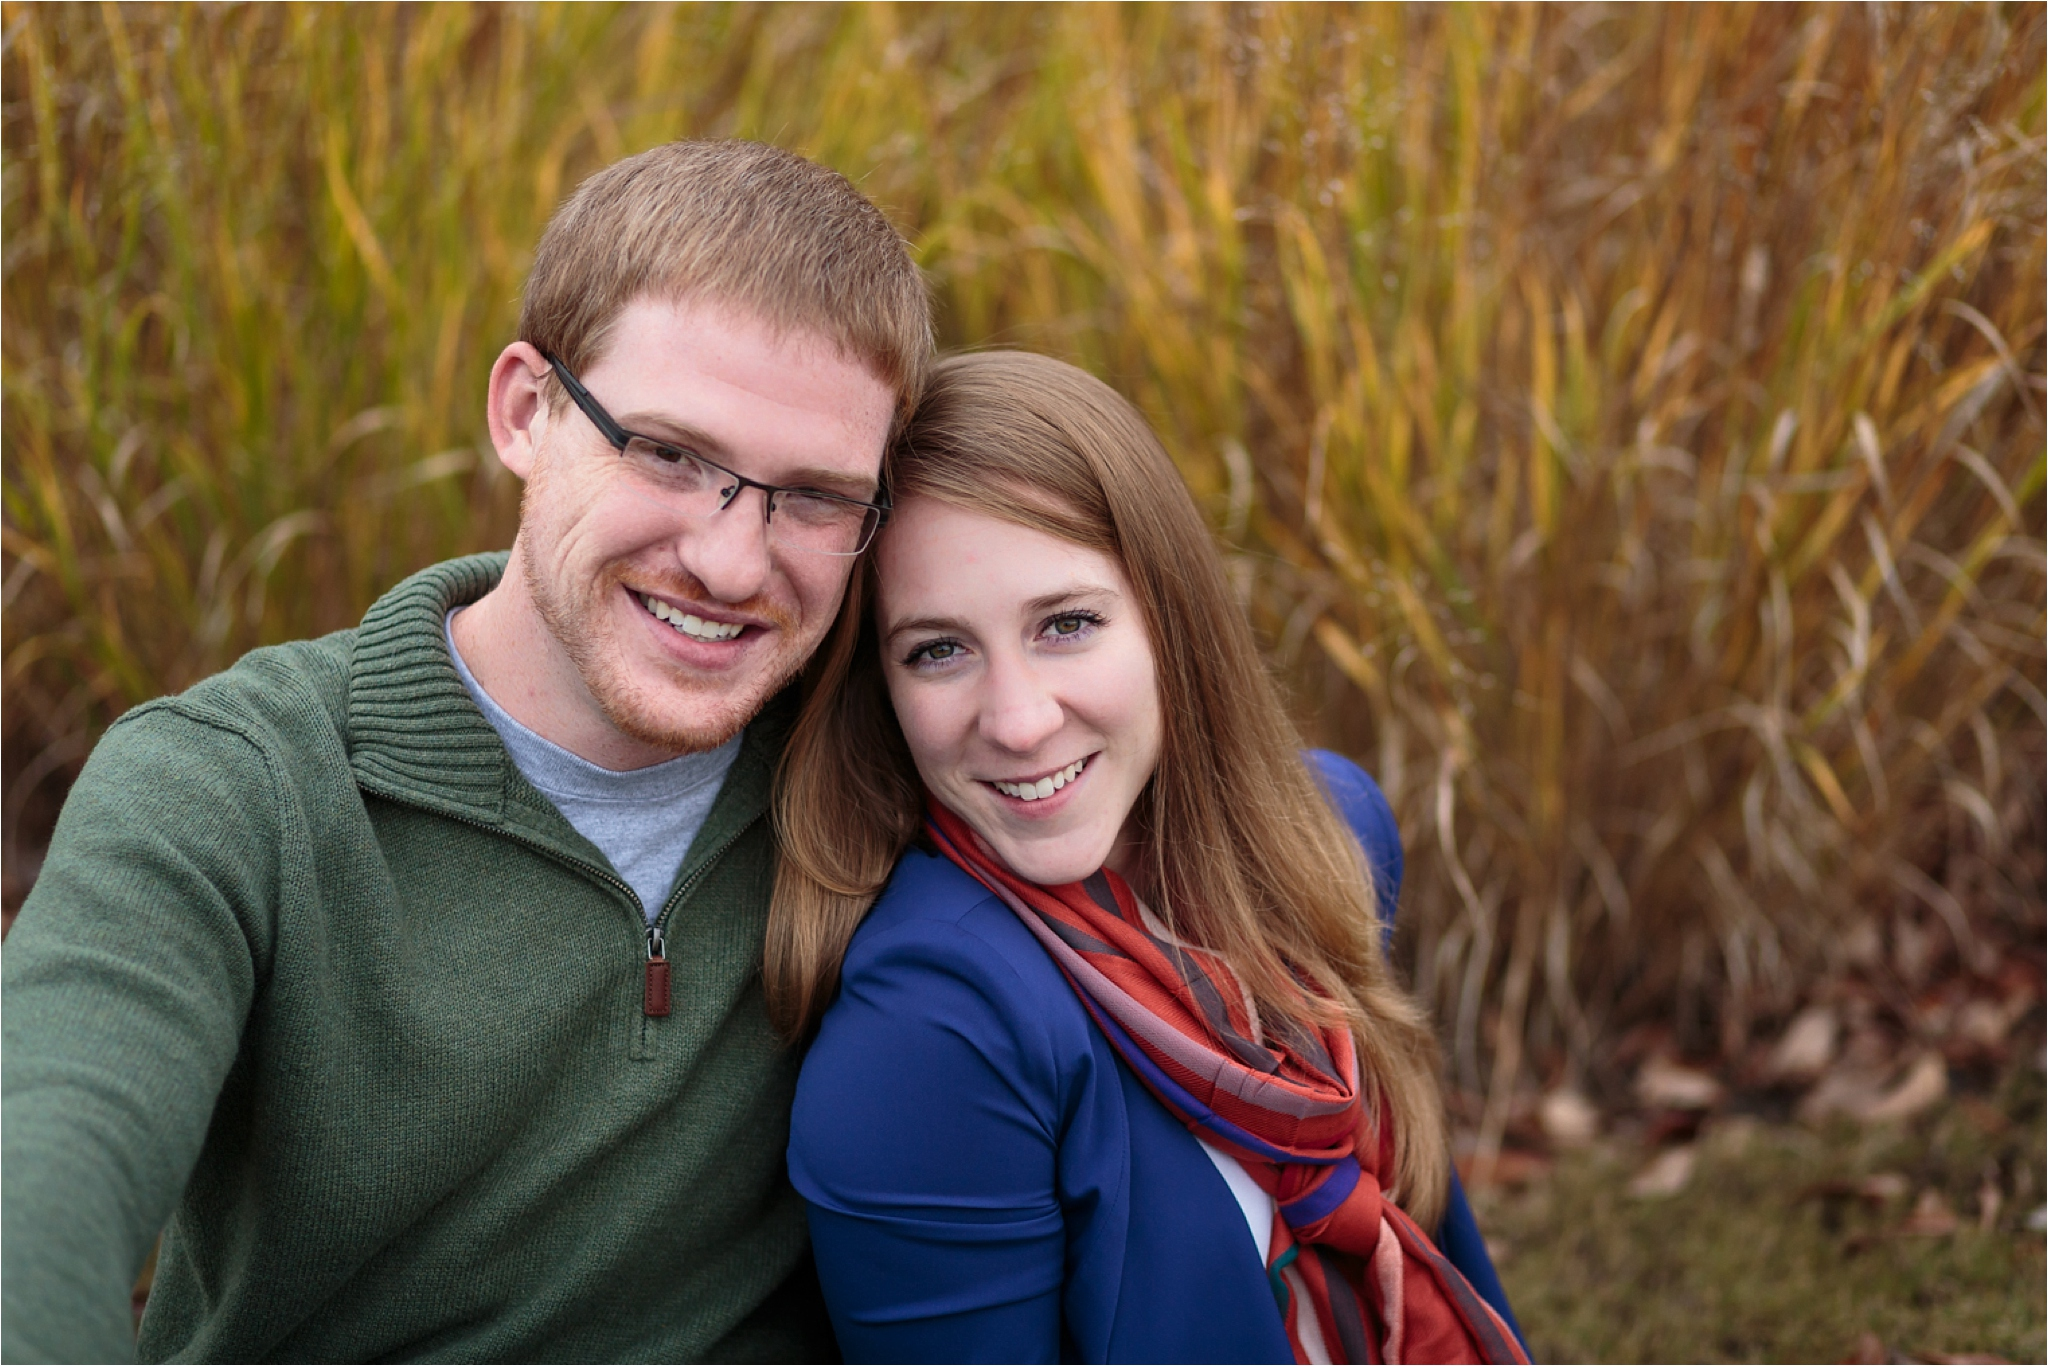 greenville-engagement-session-fall-colors-2_blog.jpg